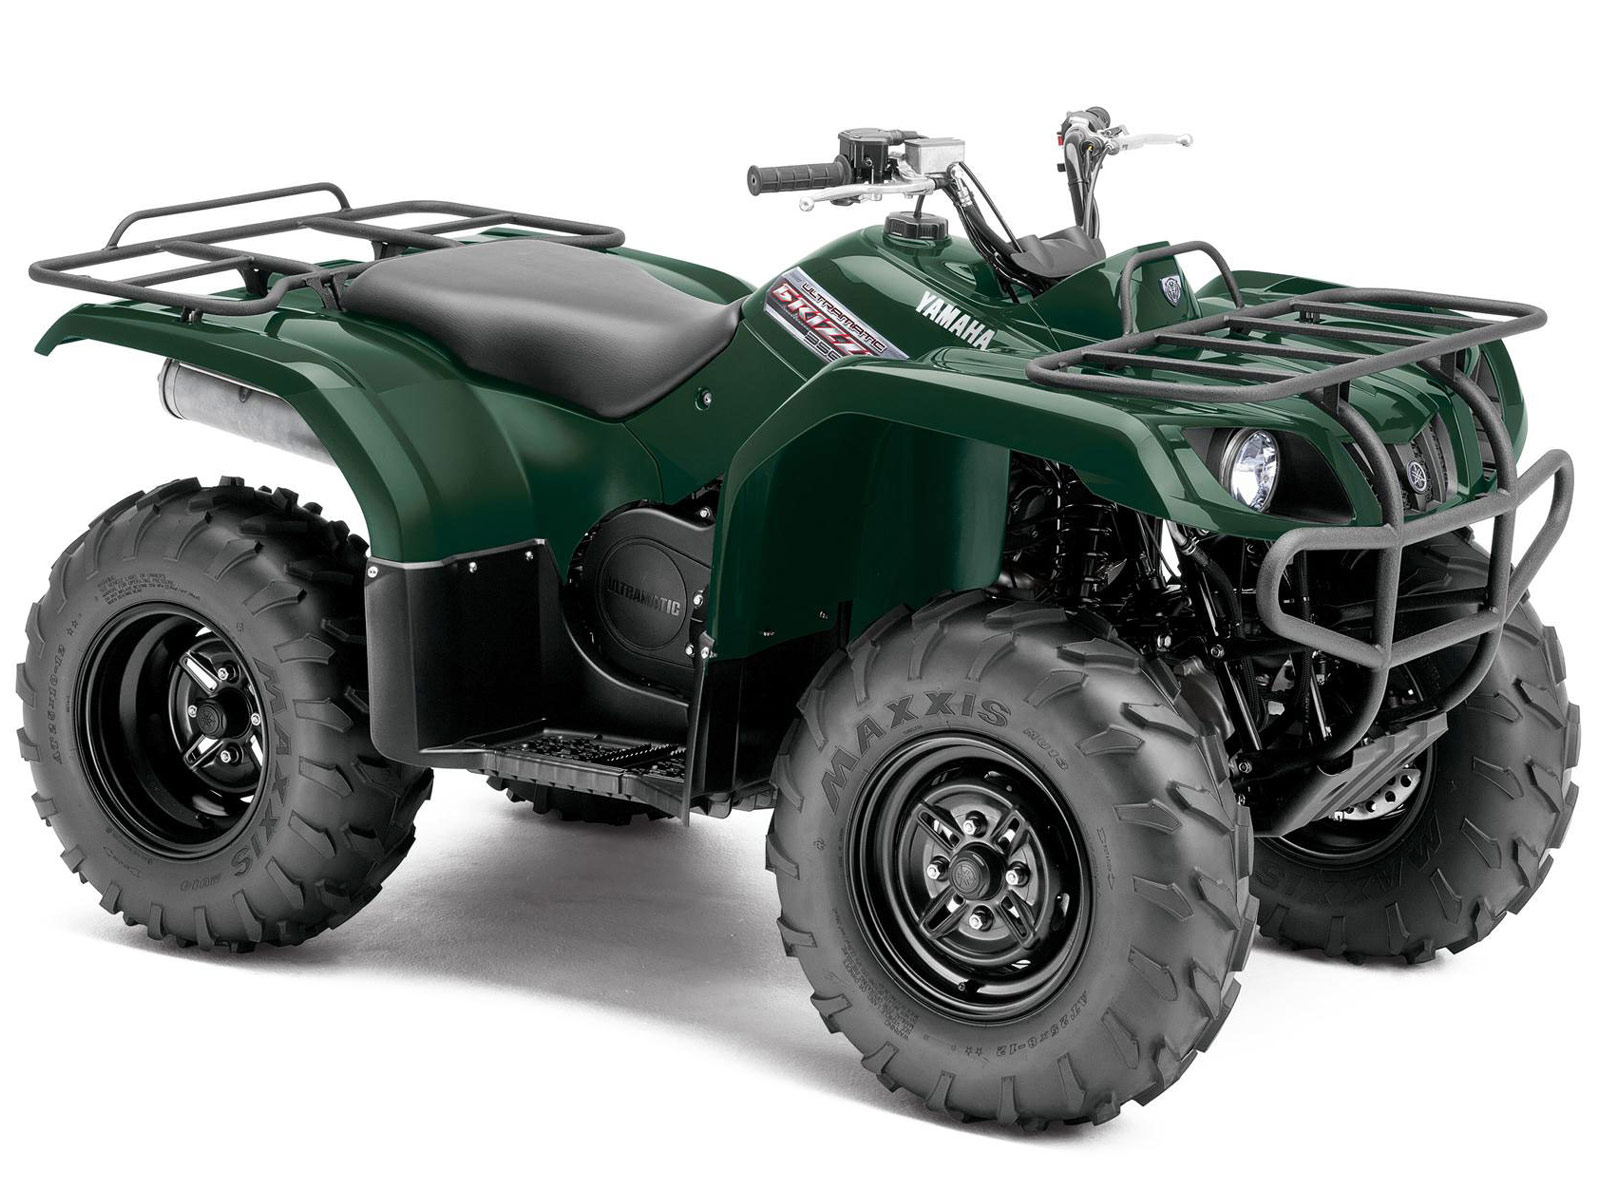 2013 yamaha grizzly 350 auto 4x4 atv pictures. Black Bedroom Furniture Sets. Home Design Ideas